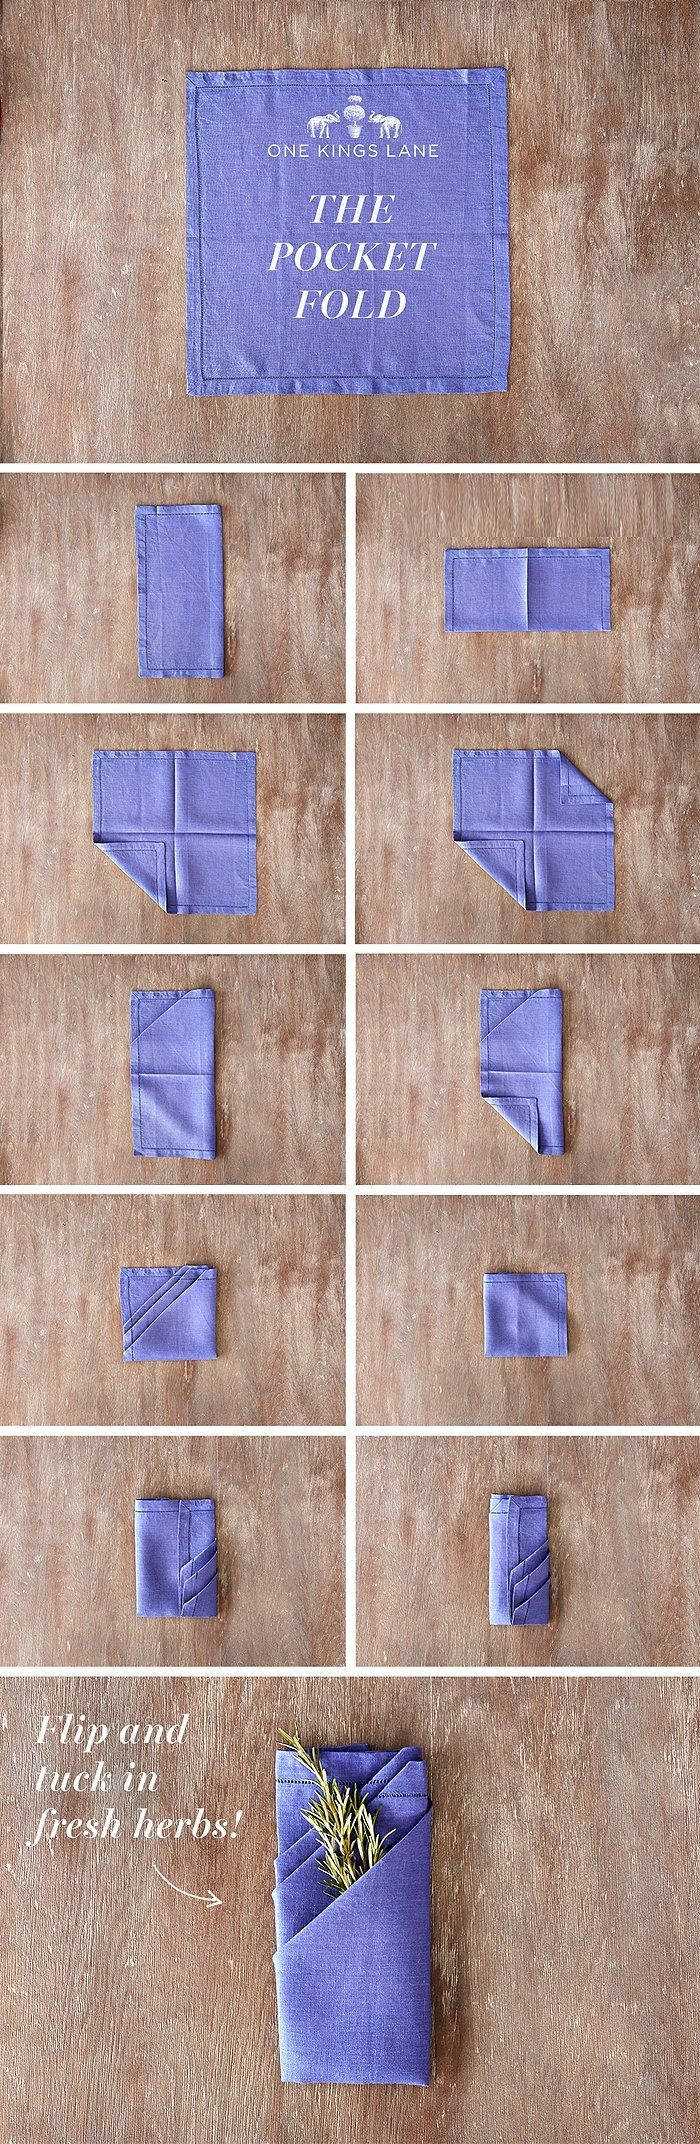 17 best ideas about folding napkins on pinterest napkins. Black Bedroom Furniture Sets. Home Design Ideas